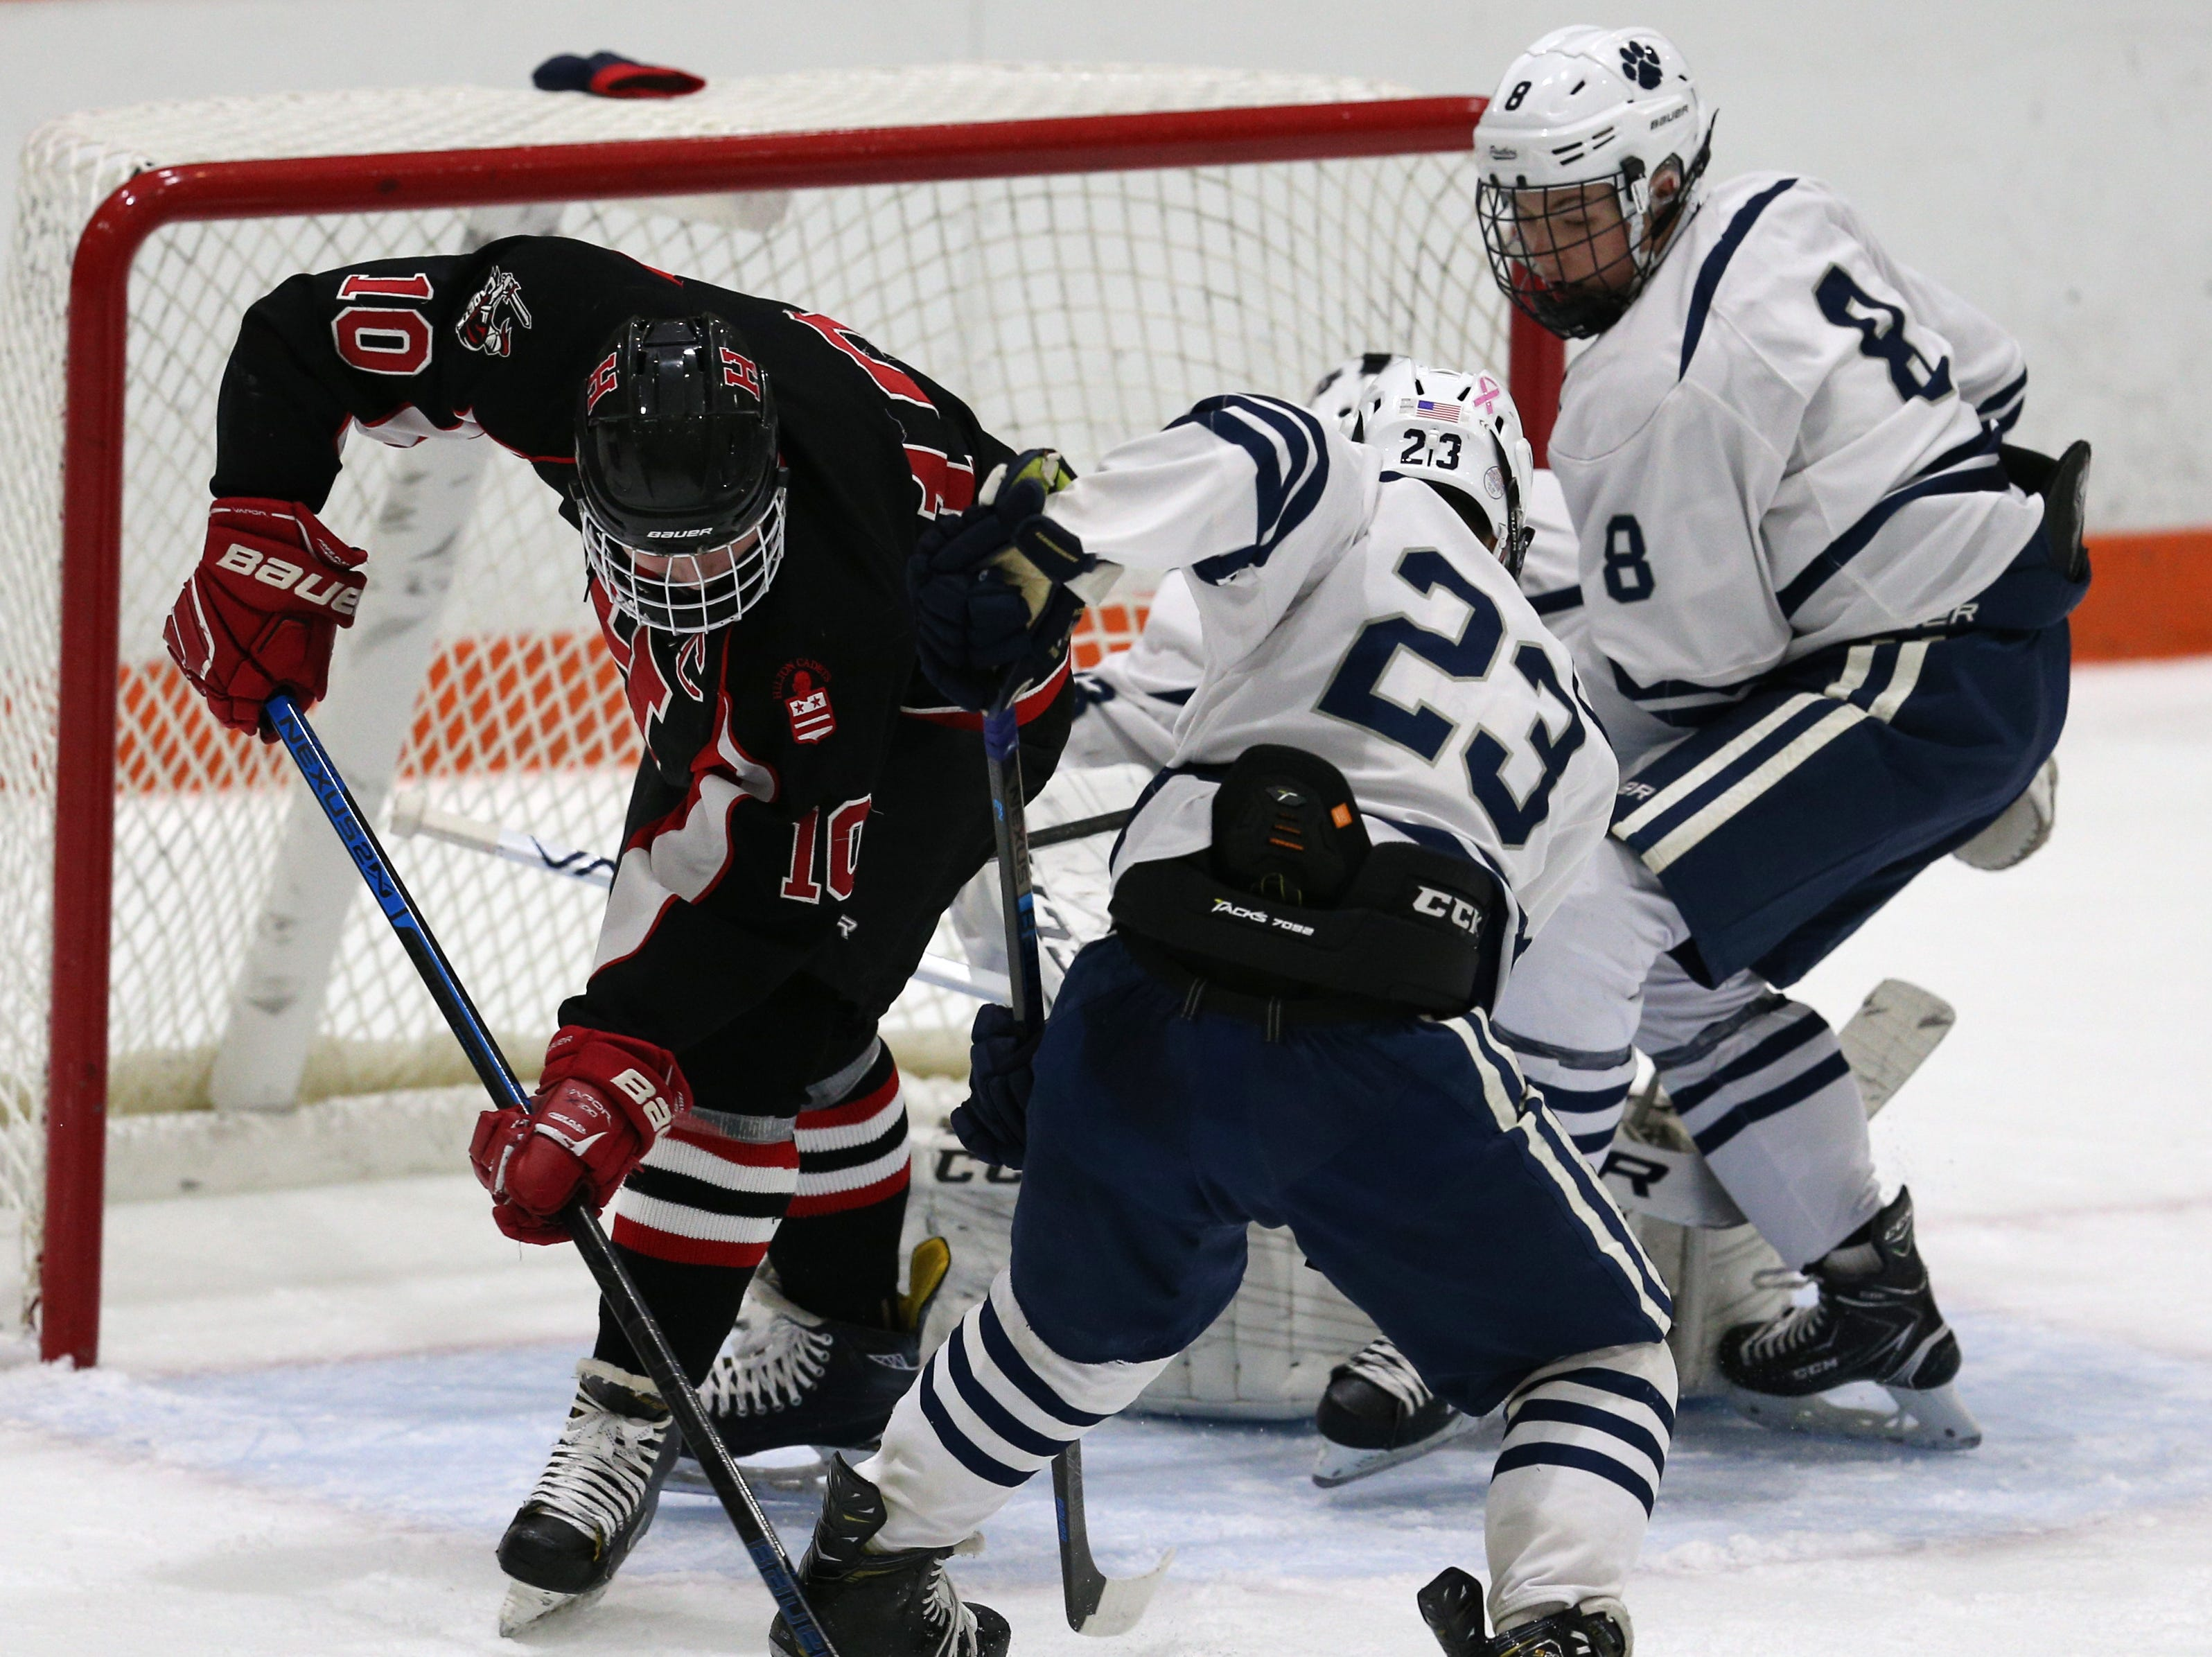 Hilton's Nate Higgins (10) and Pittsford's Brian Judge (23) battle for the puck in front of the Pittsford net.